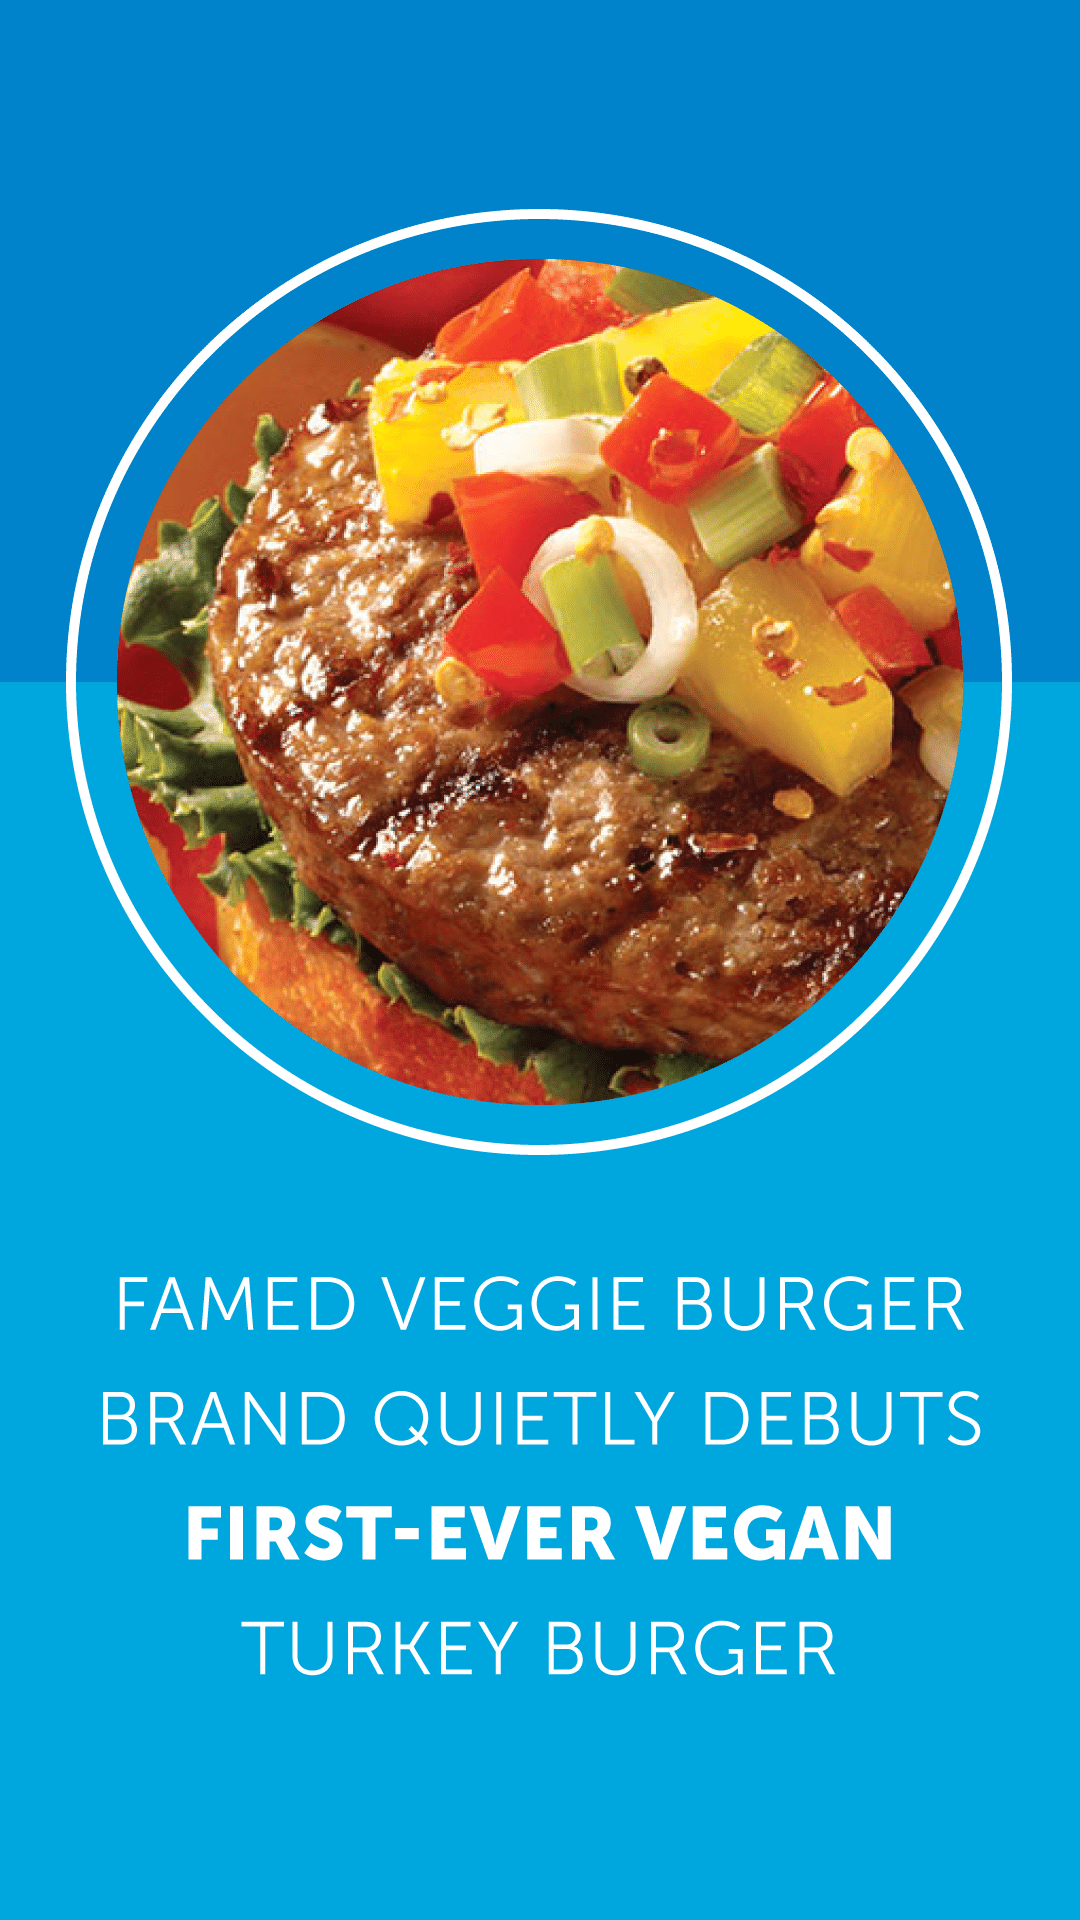 Famed Veggie Burger Brand Quietly Debuts First-Ever Vegan Turkey Burger